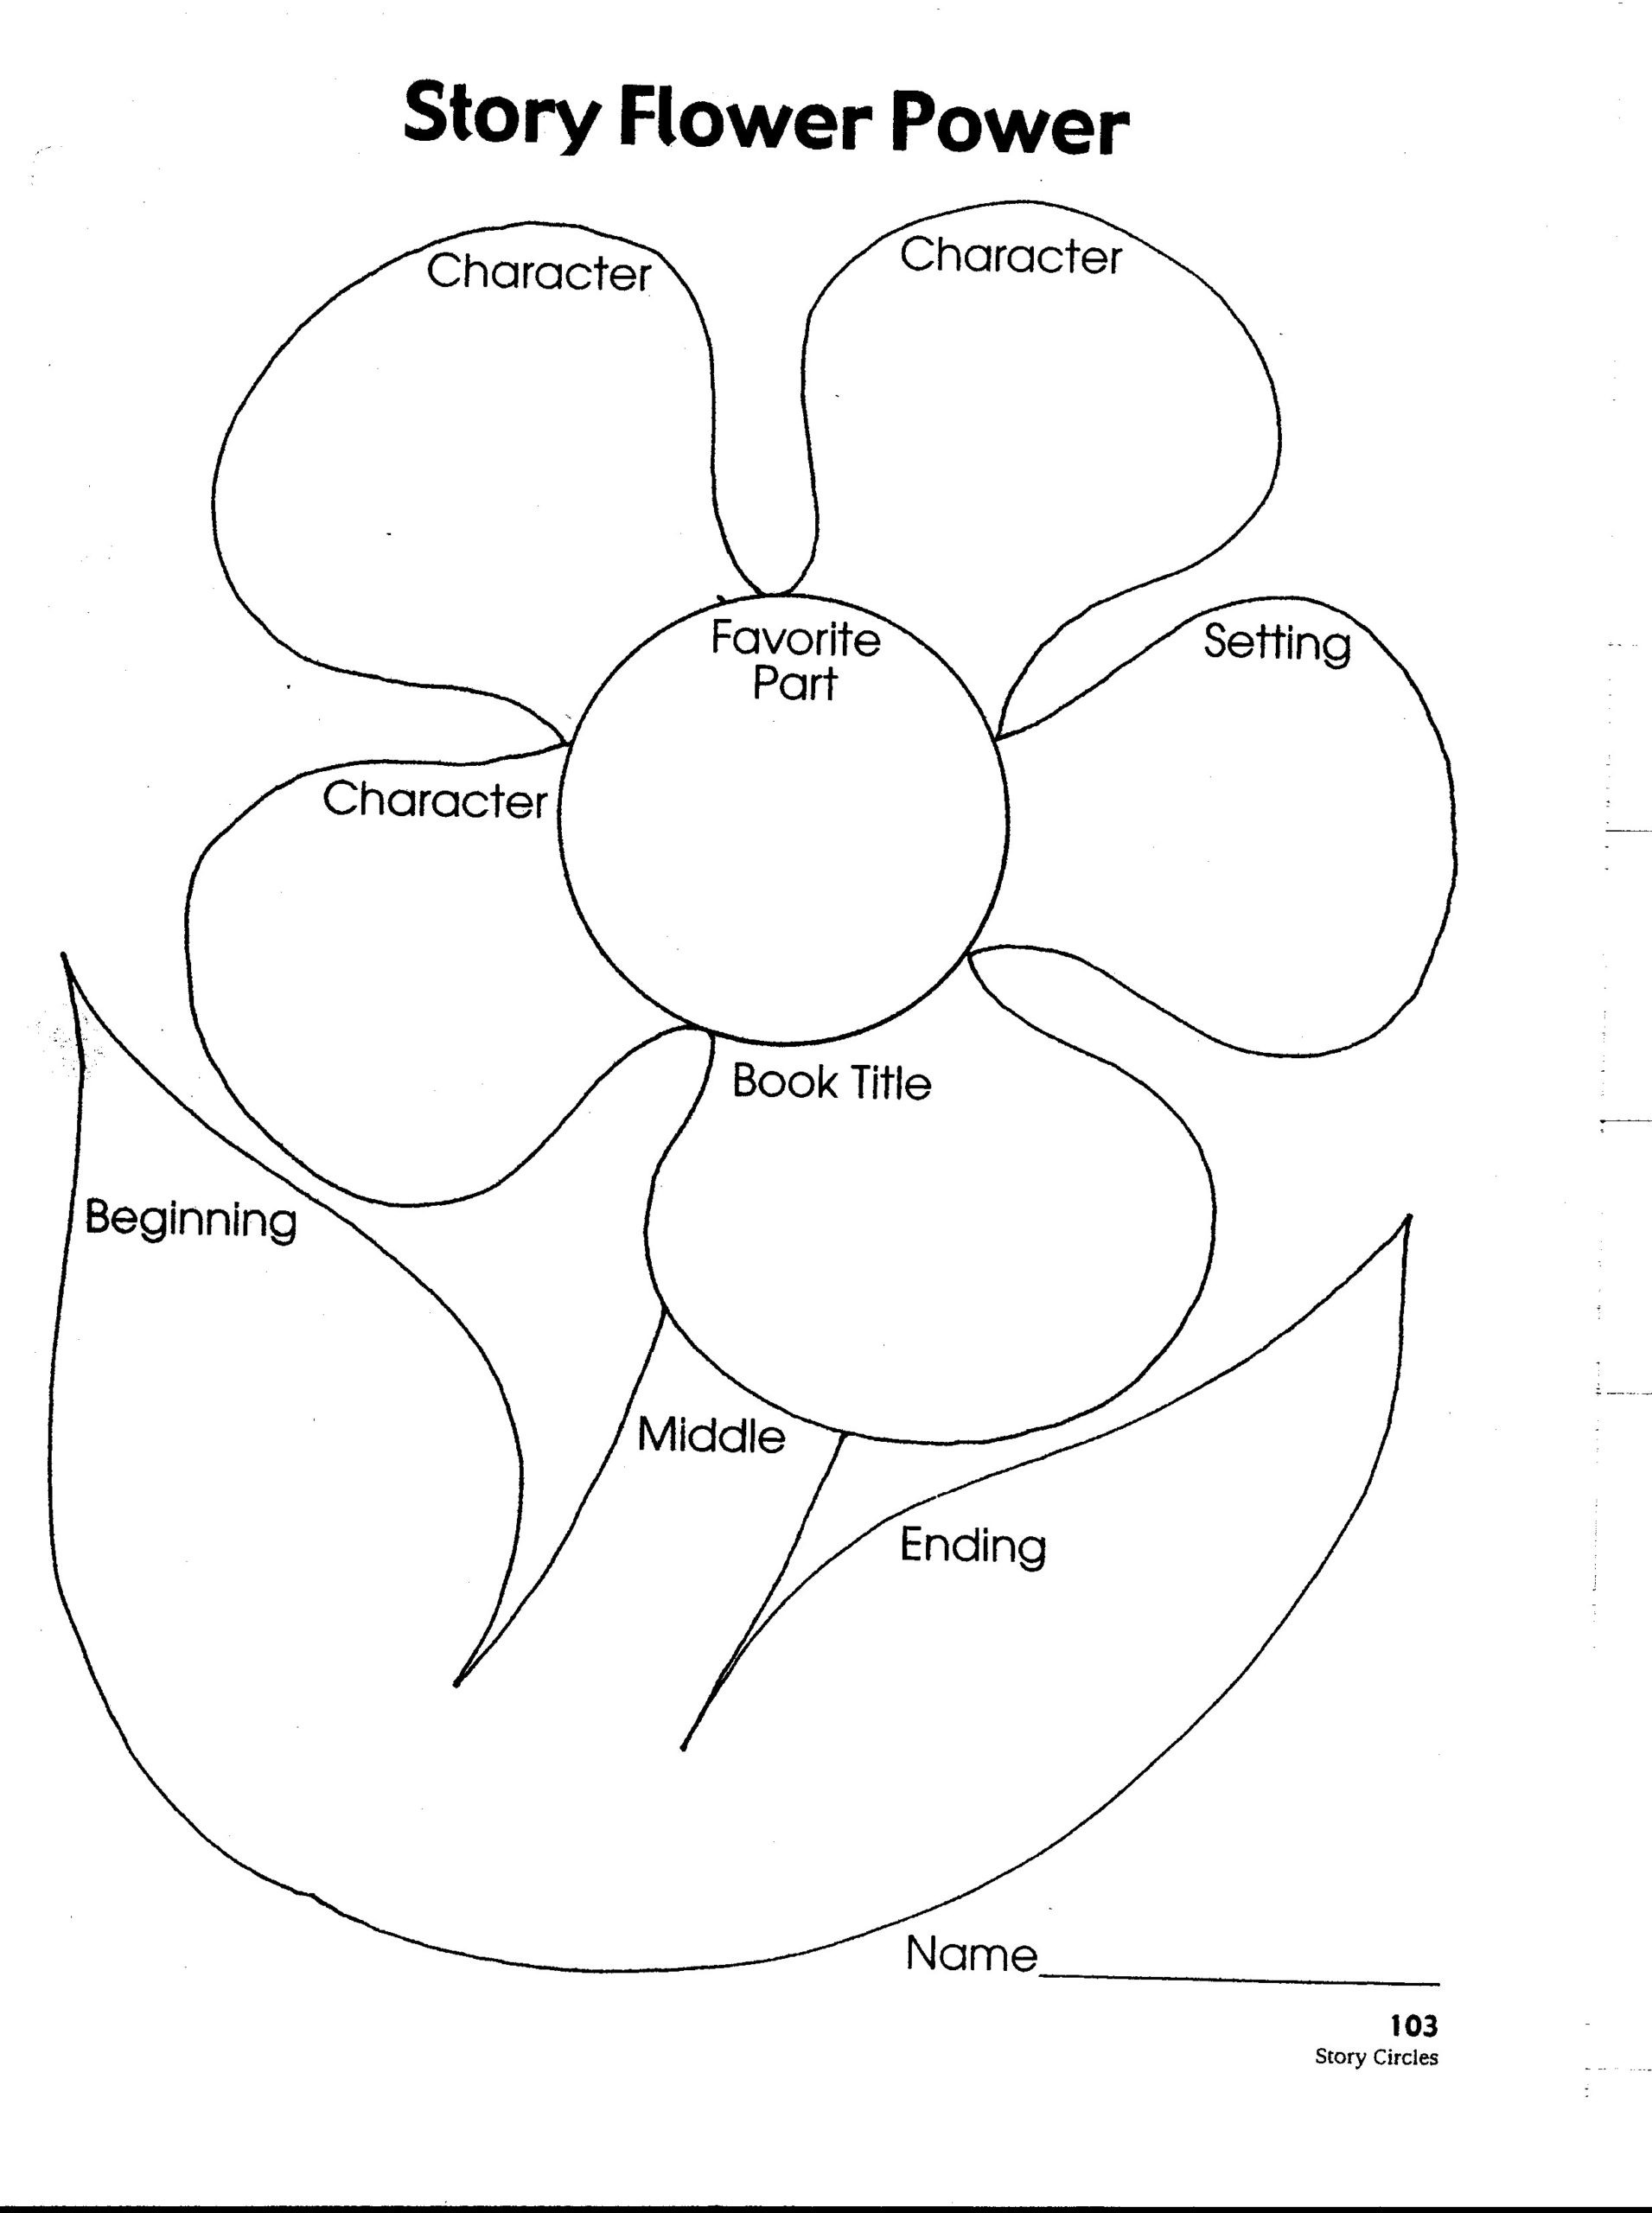 Saxon Math Worksheets 5th Grade Flower Worksheet Printable Worksheets and Activities for